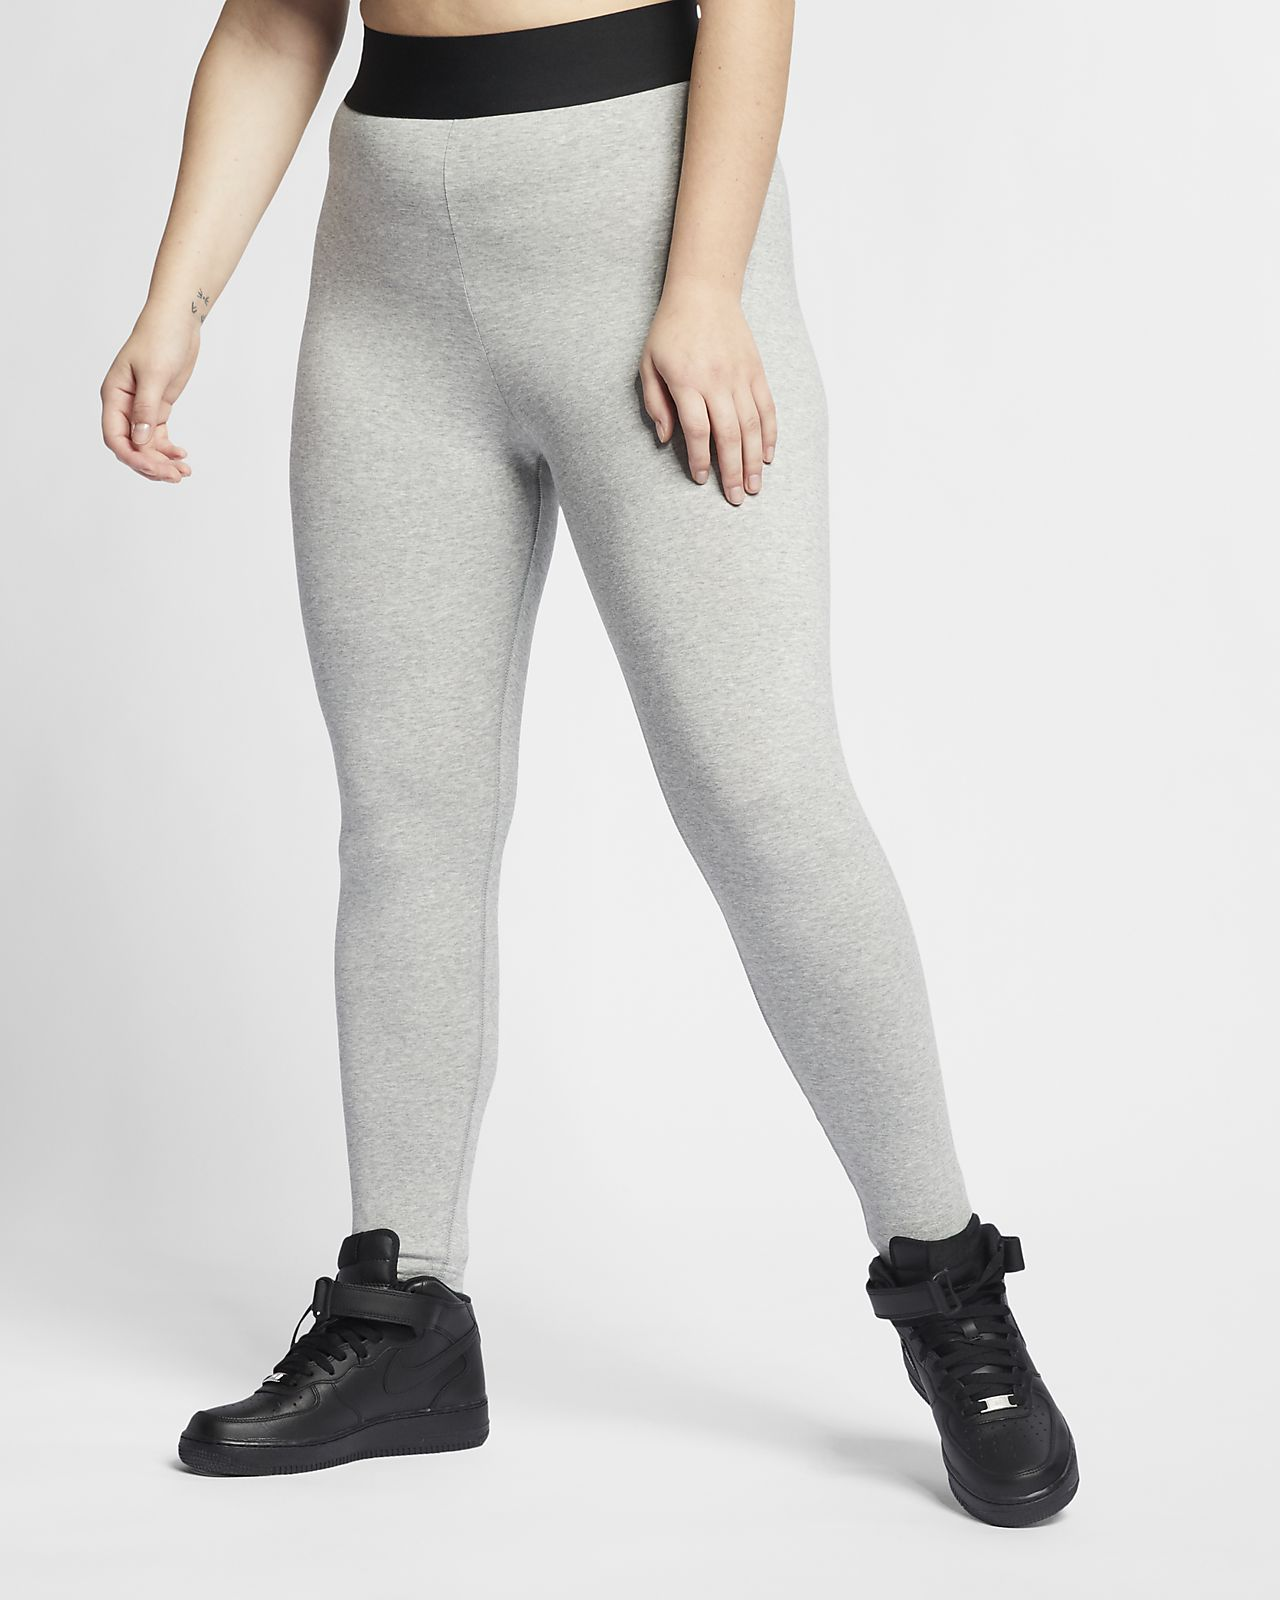 116f8a7638a6e ... Nike Sportswear Leg-A-See Women's High-Rise Leggings (Plus Size)